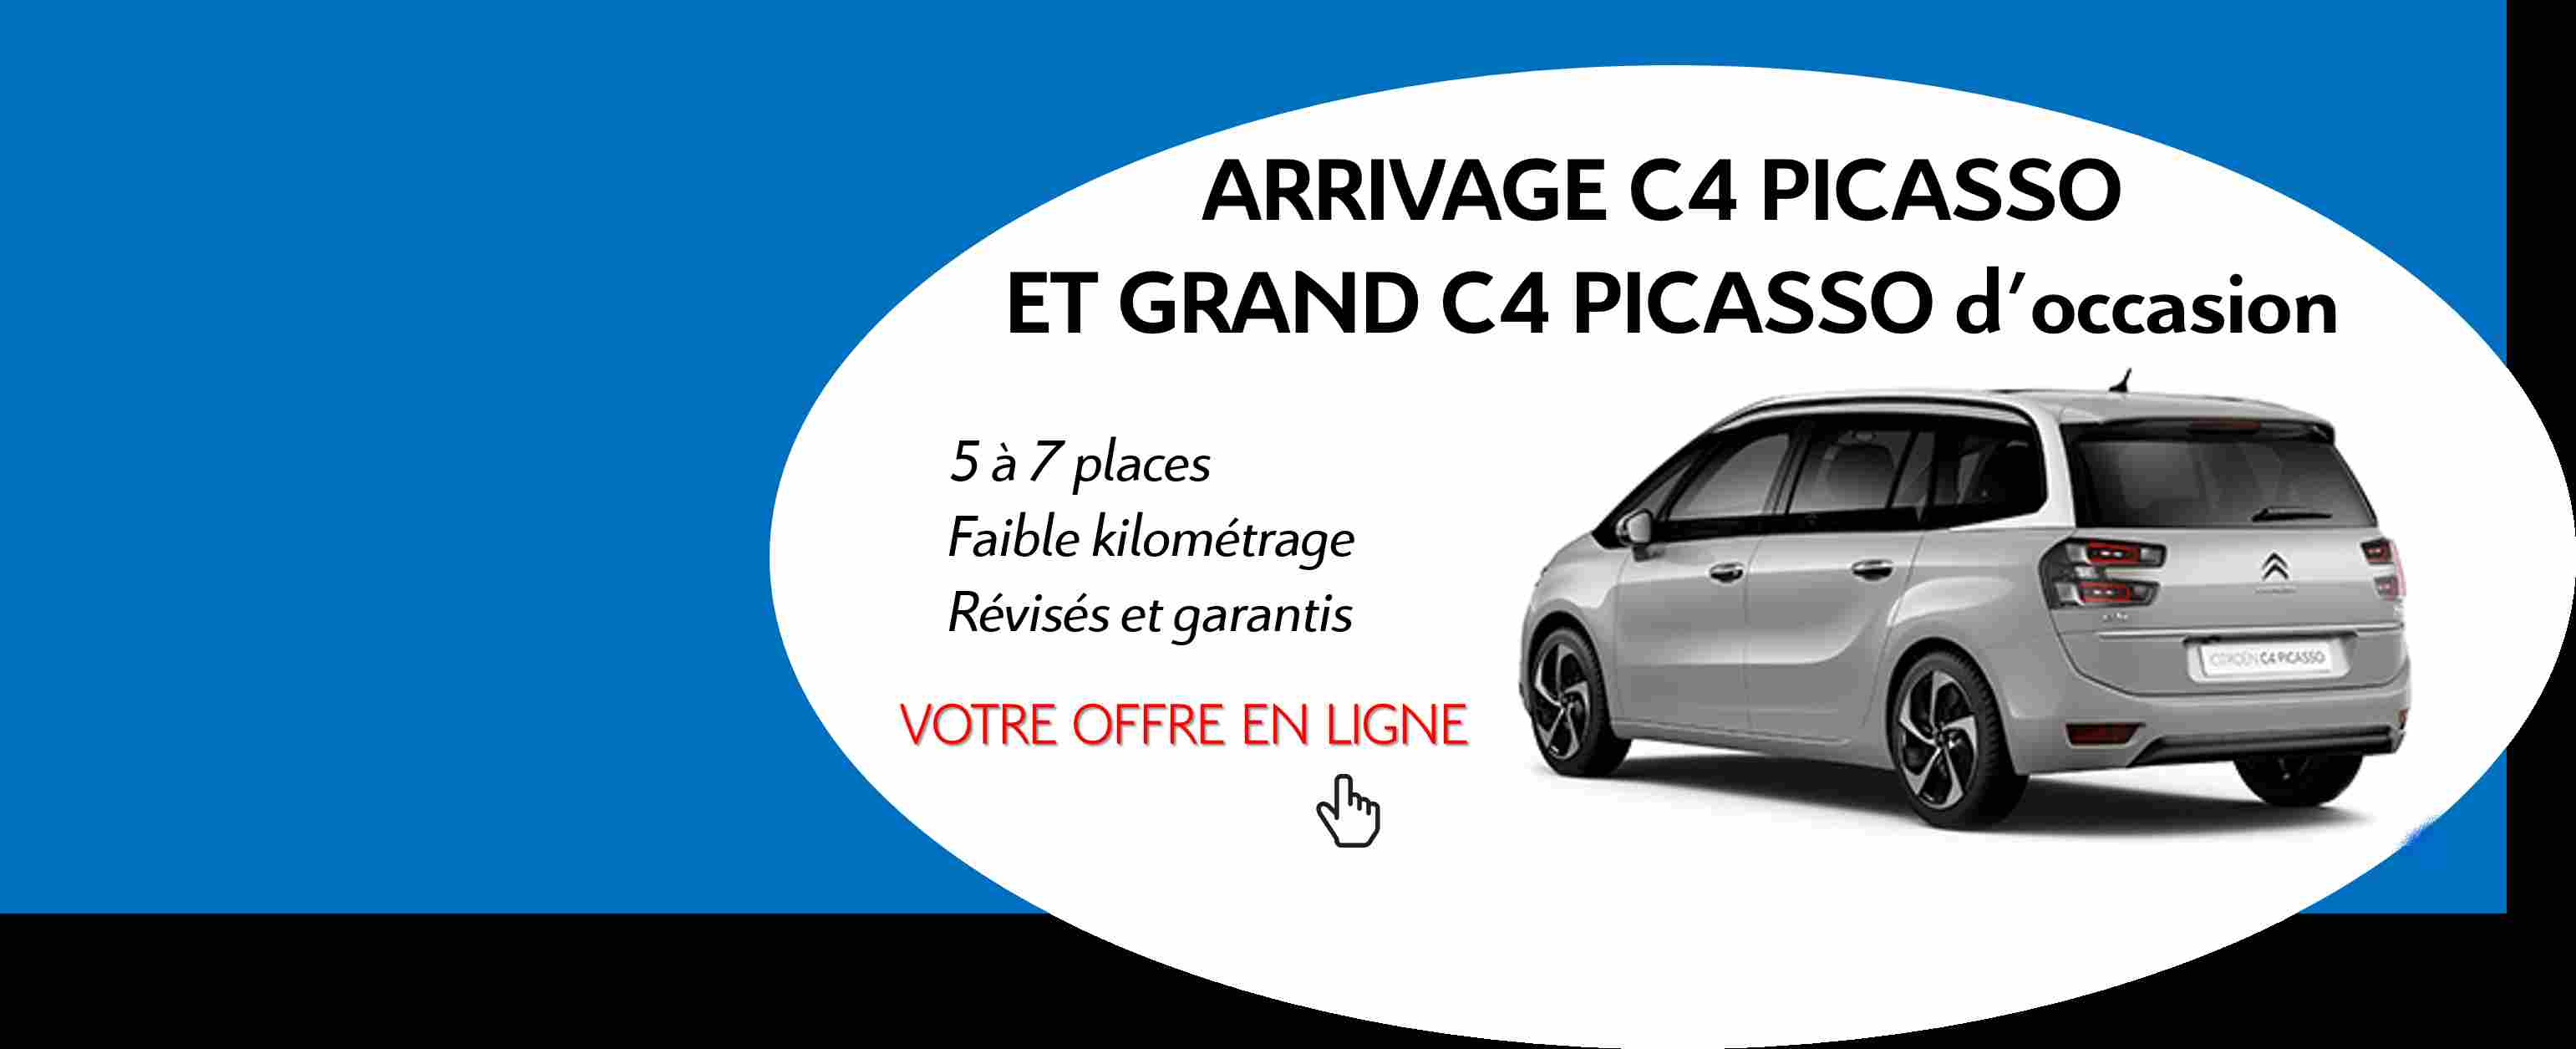 Arrivage C4 Picasso d'occasion